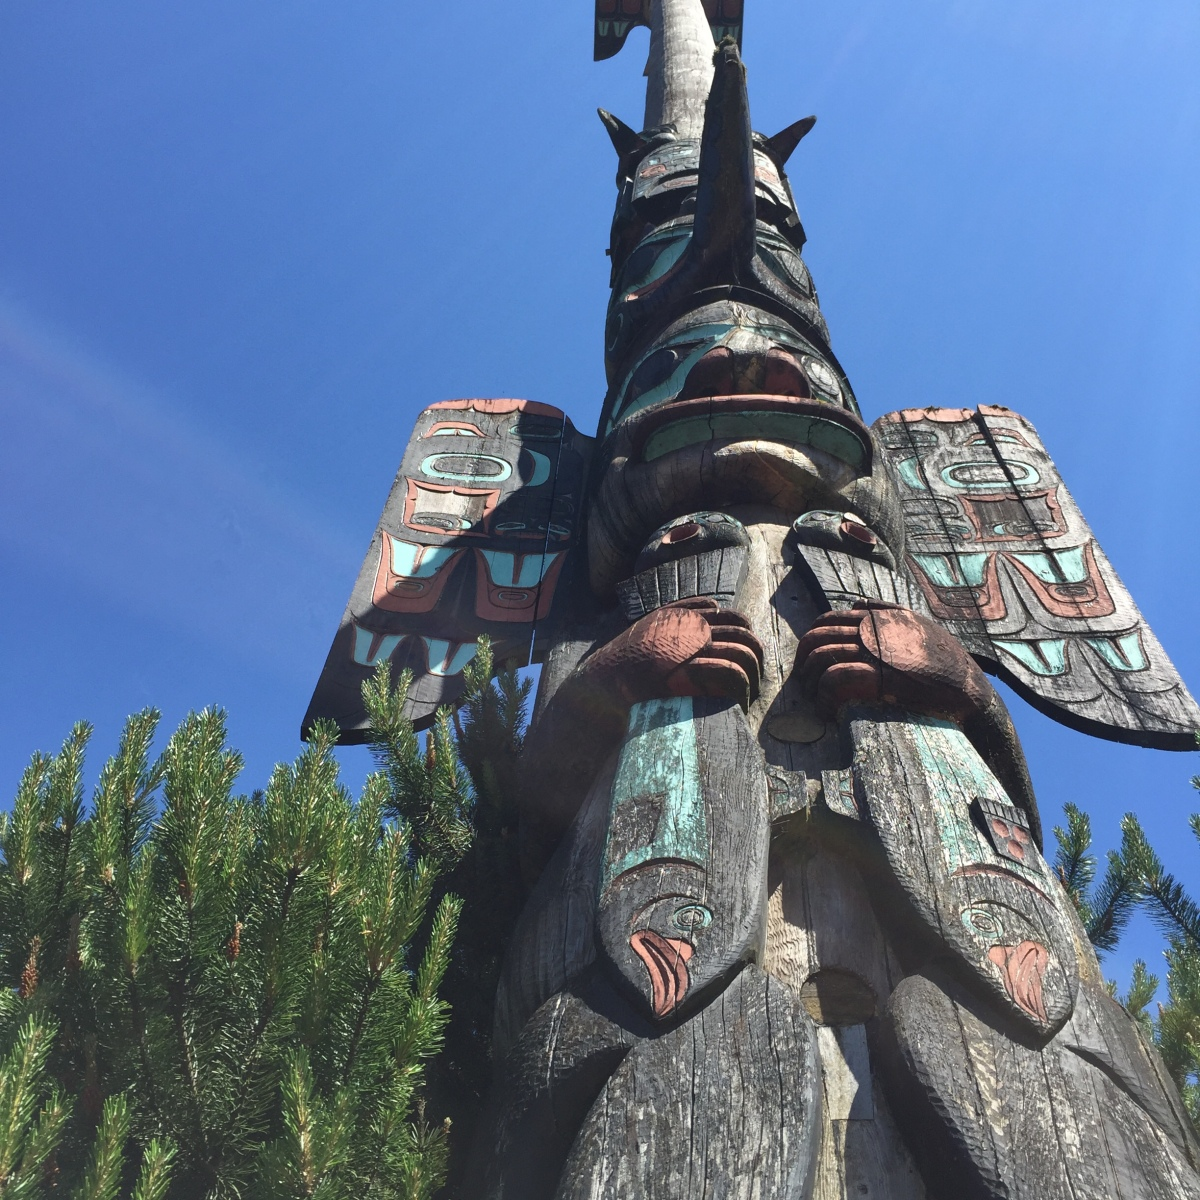 Ketchikan, Alaska: A City of Salmon and Totem Poles